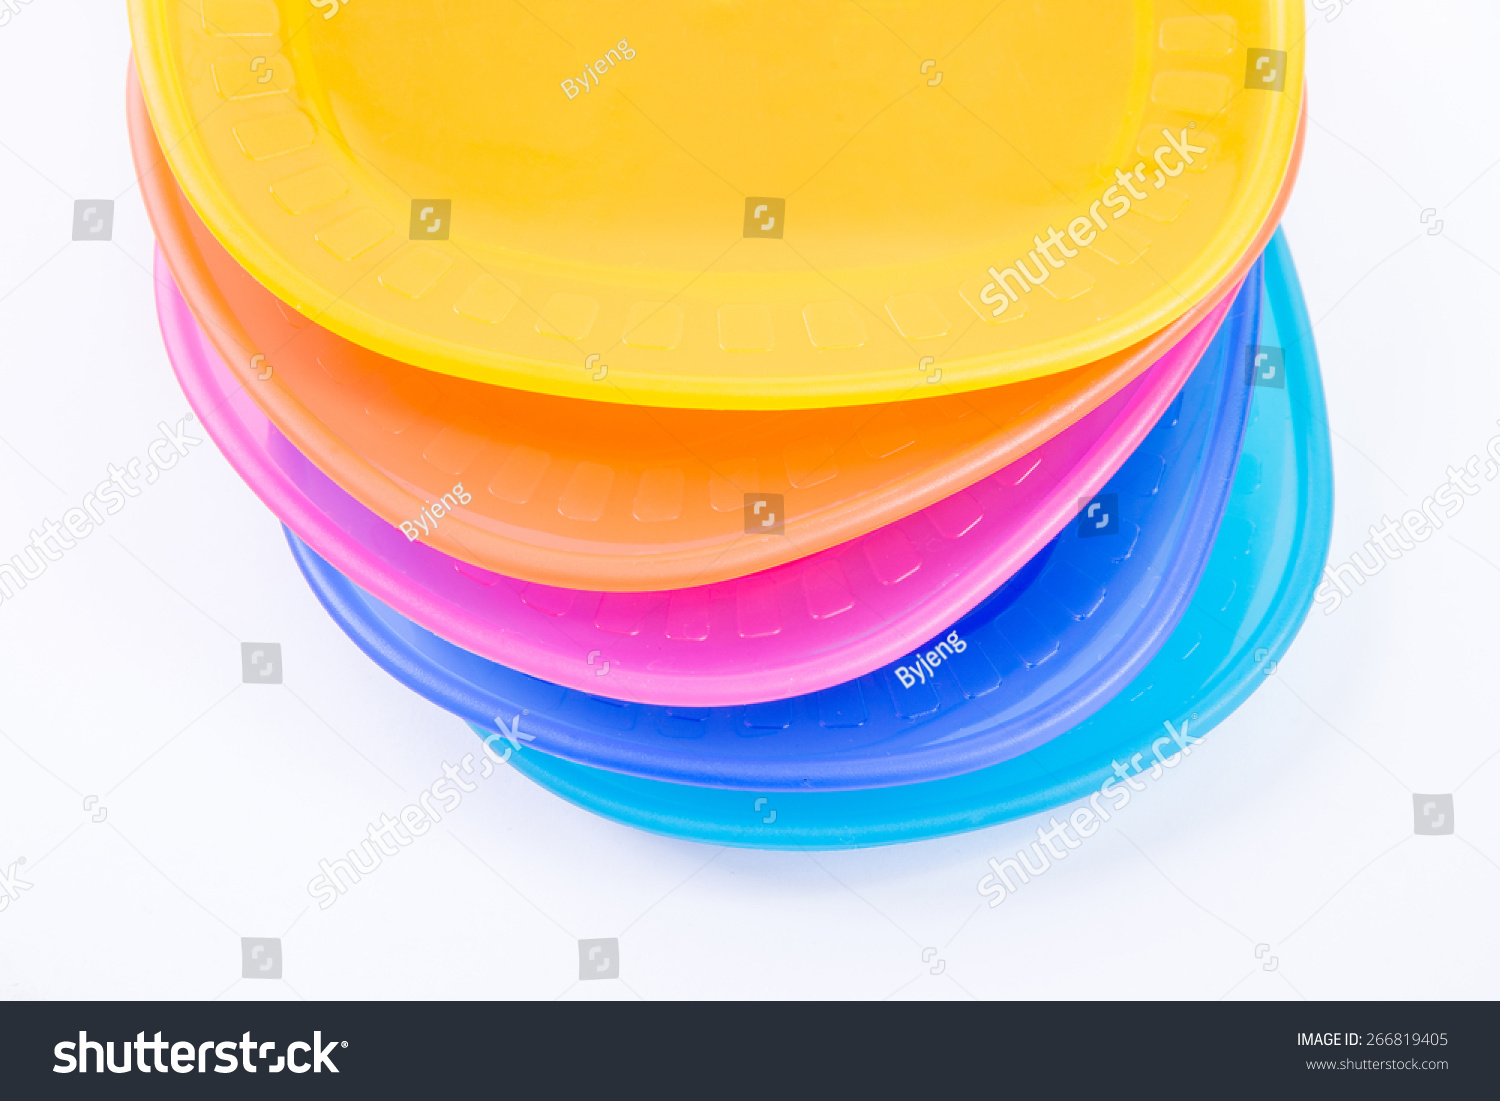 Colorful plastic plates closeup isolated on white background & Colorful Plastic Plates Closeup Isolated On Stock Photo 266819405 ...